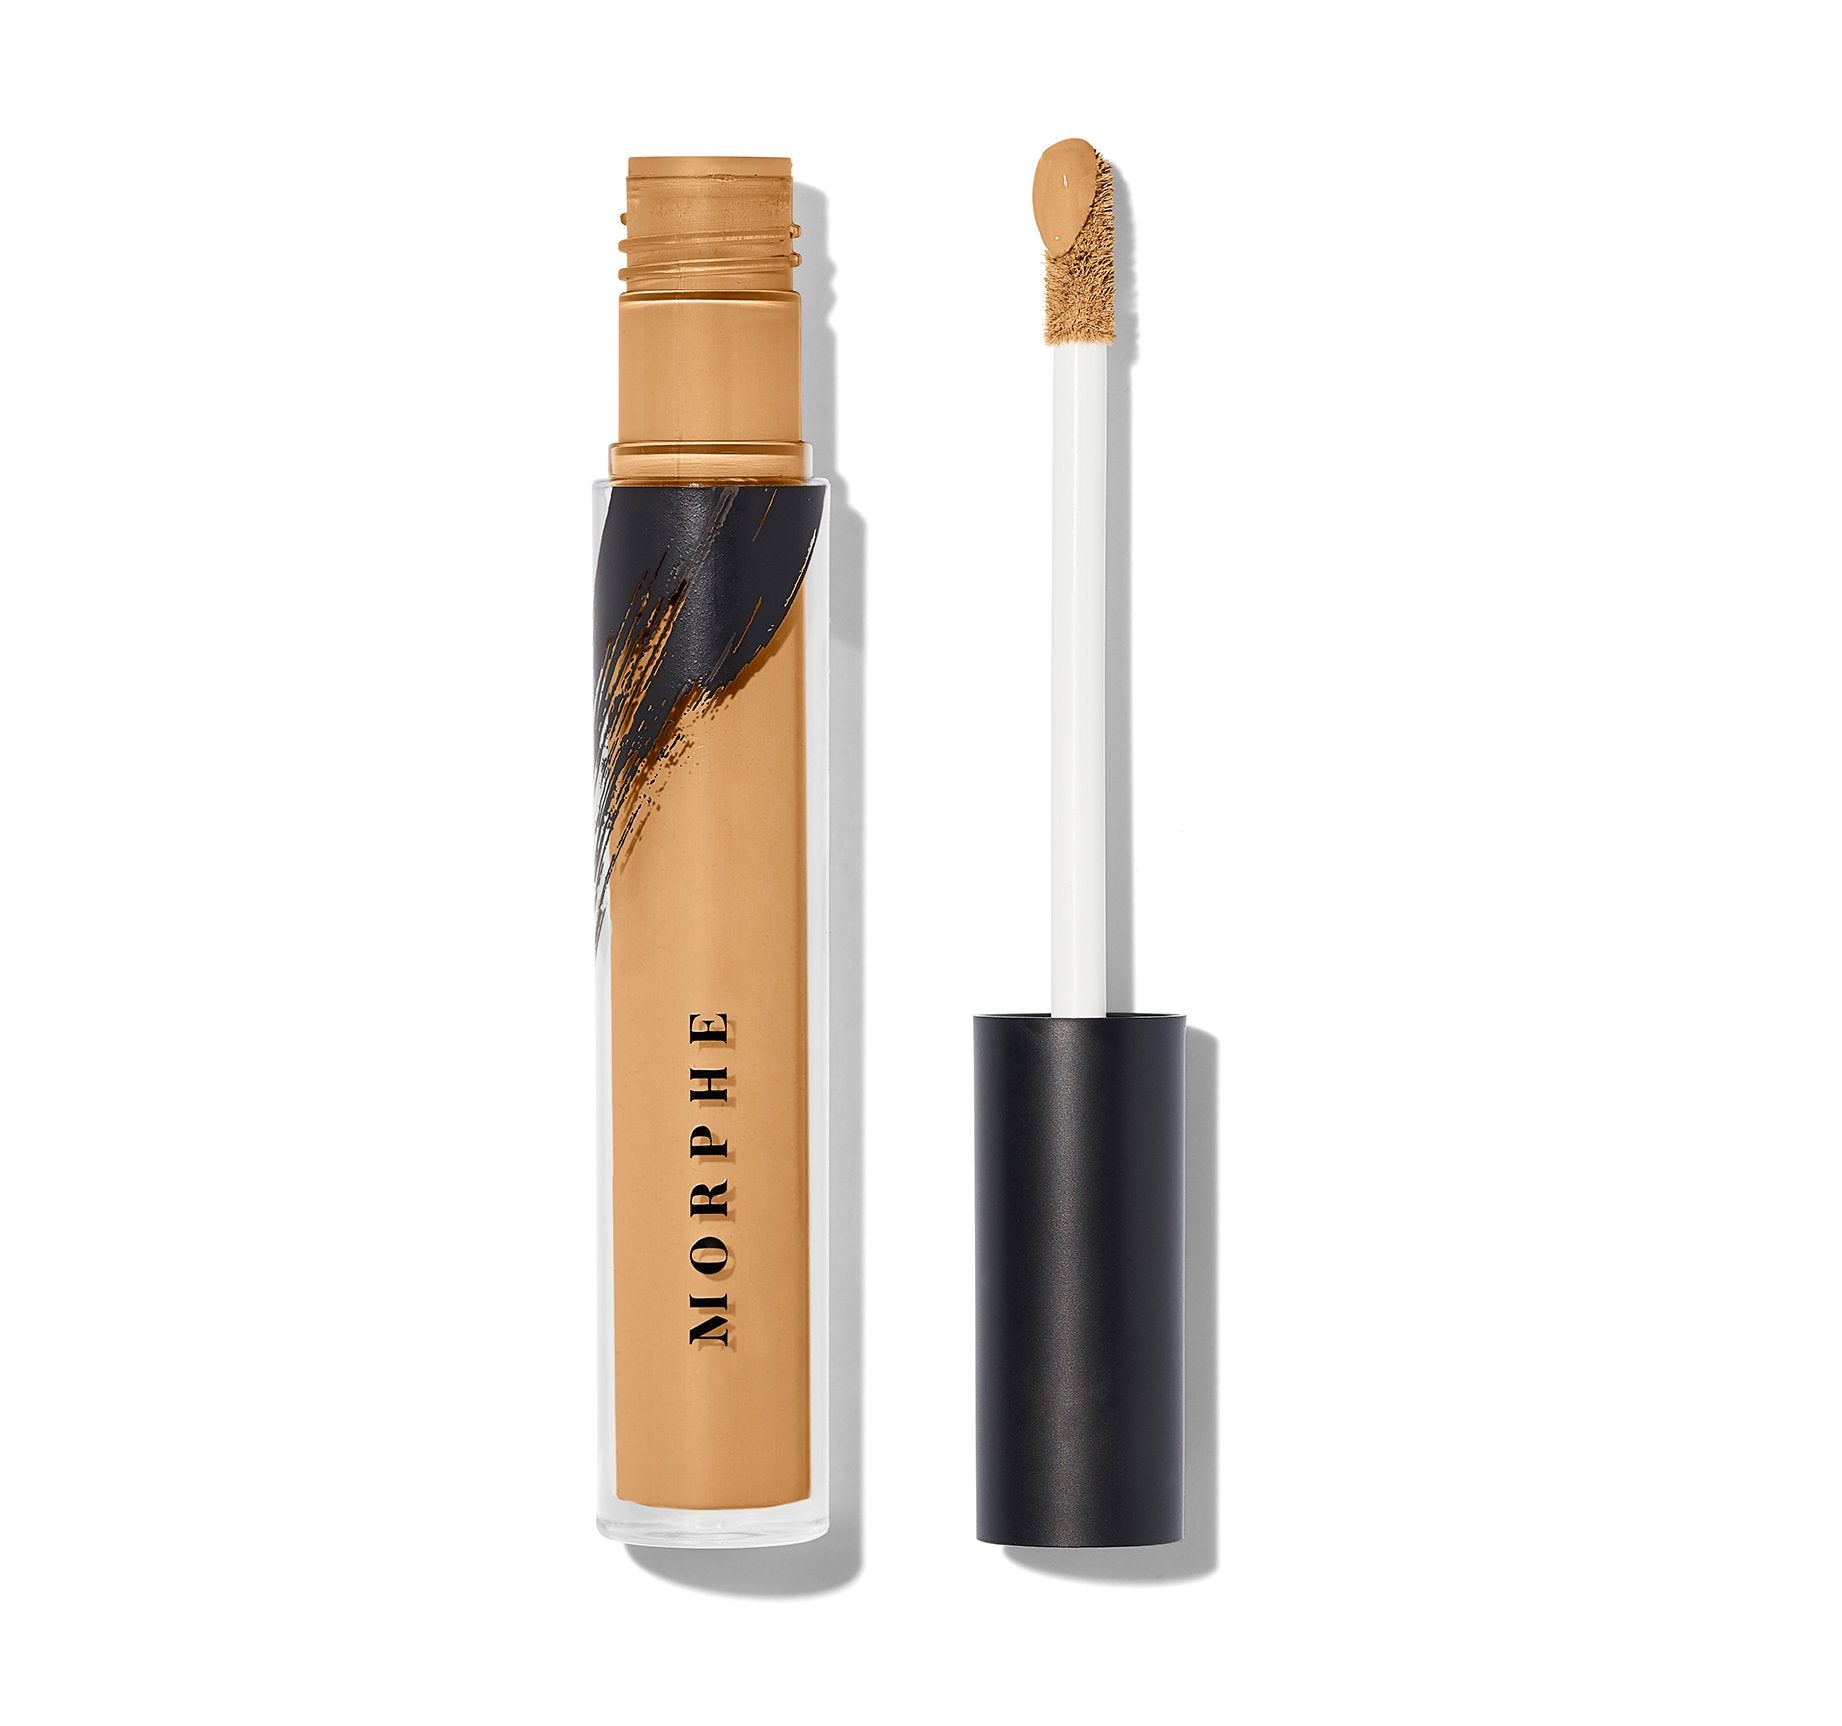 FLUIDITY FULL-COVERAGE CONCEALER - C2.25, view larger image